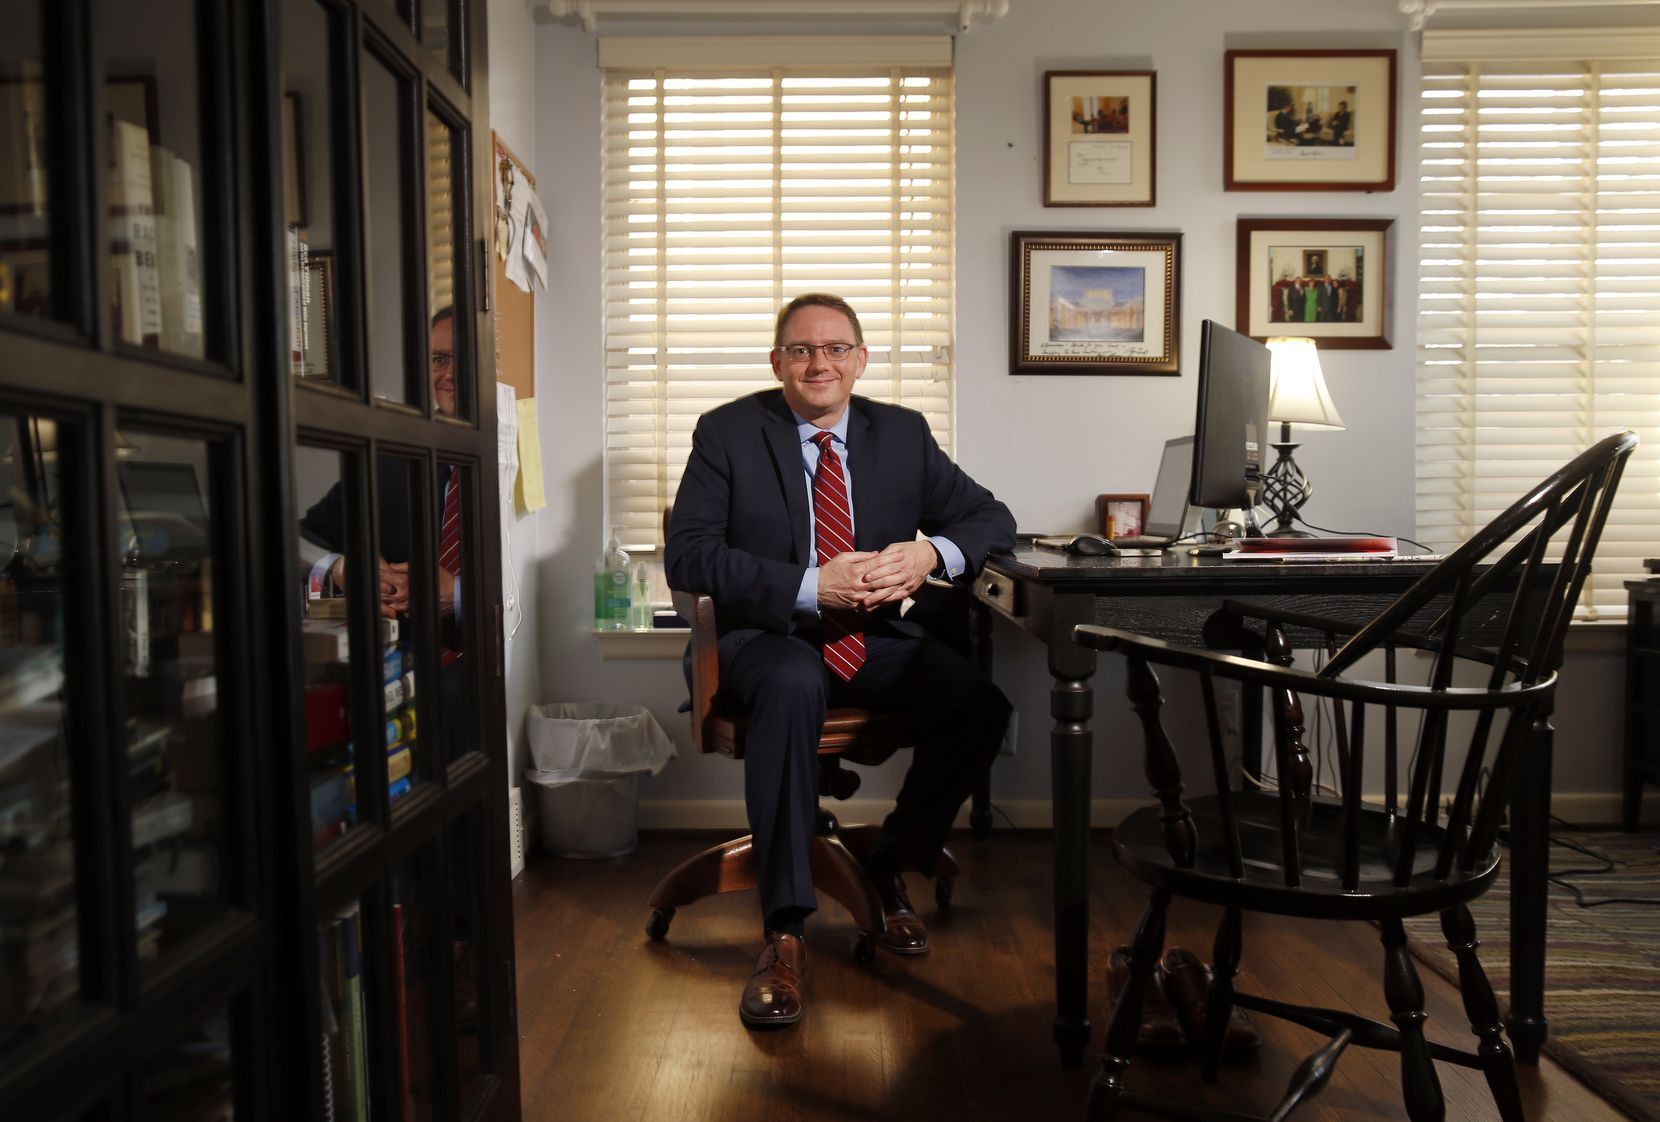 New Dallas Morning News Vice President and Editor of Editorials Brendan Miniter is pictured at his Dallas home, Tuesday, January 16, 2018. (Tom Fox/The Dallas Morning News)